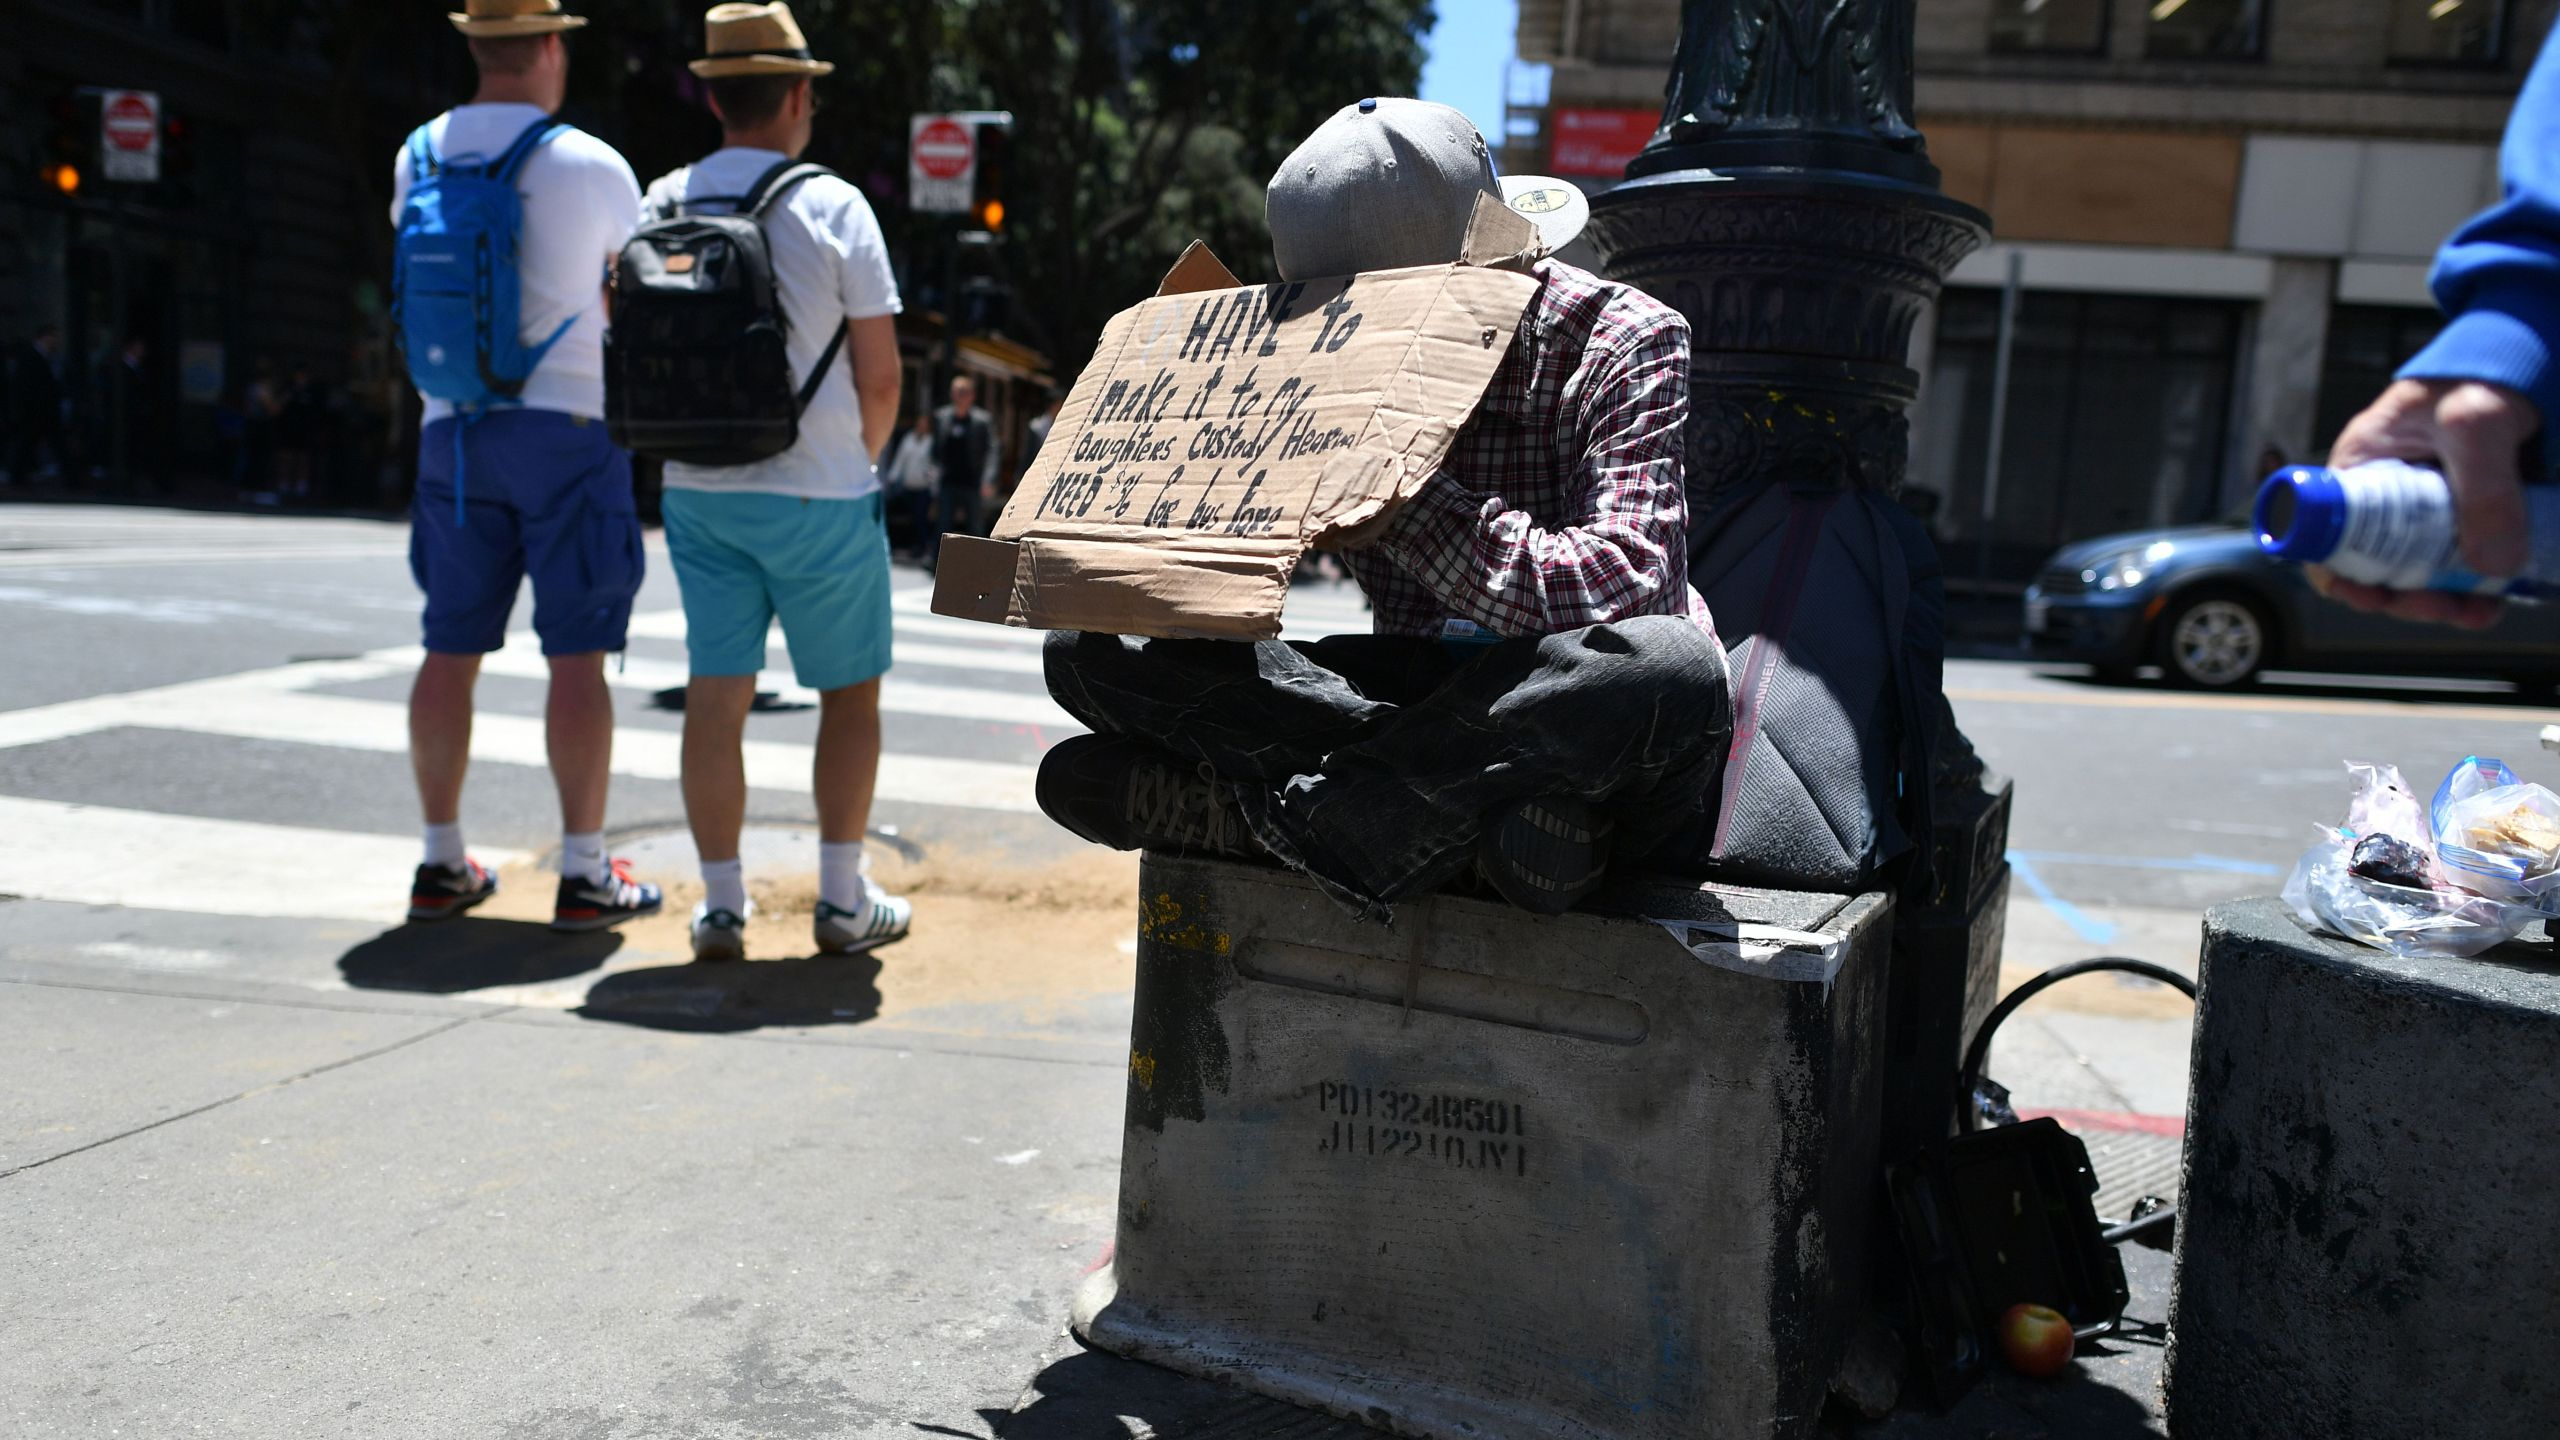 A homeless man begs along a sidewalk in downtown San Francisco, California on June, 28, 2016. (Credit: JOSH EDELSON/AFP/Getty Images)